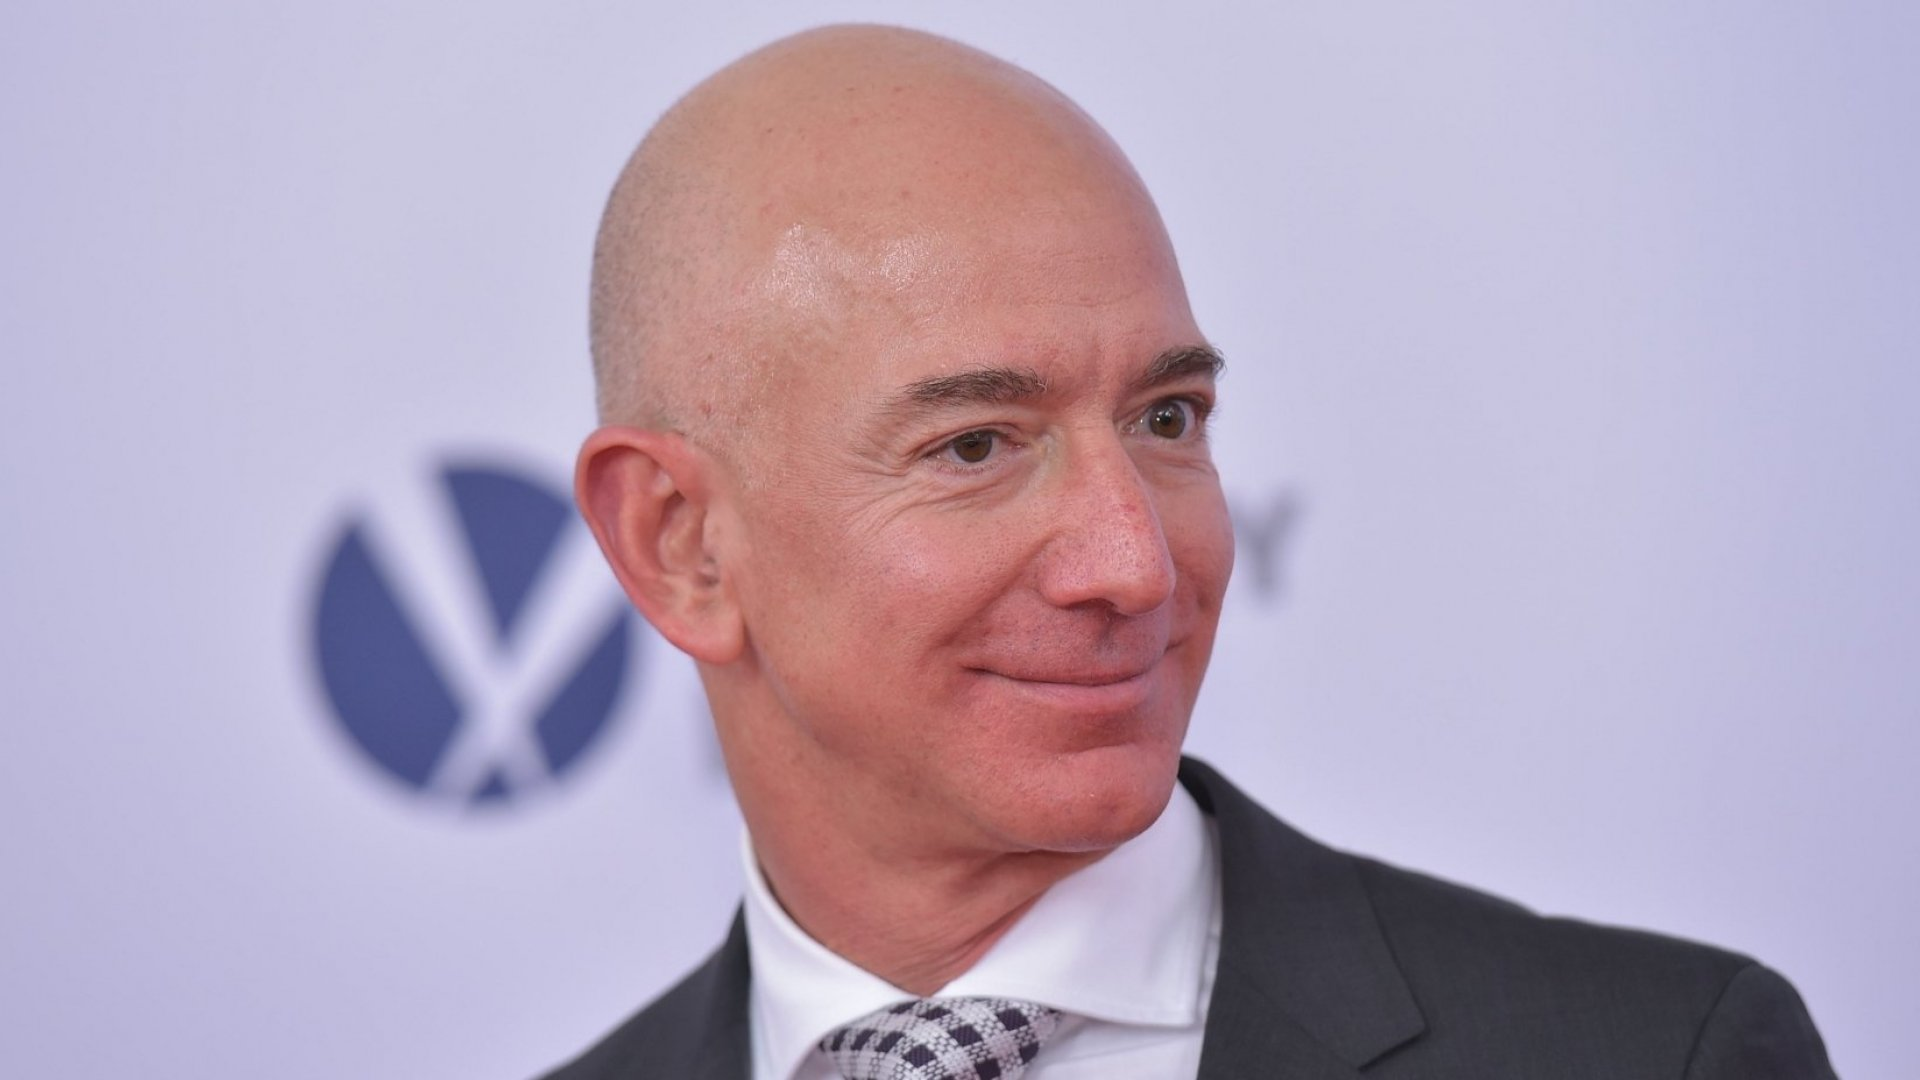 Forget Living in the Moment. Jeff Bezos Organizes His Time So That He Lives 2 to 3 Years Out